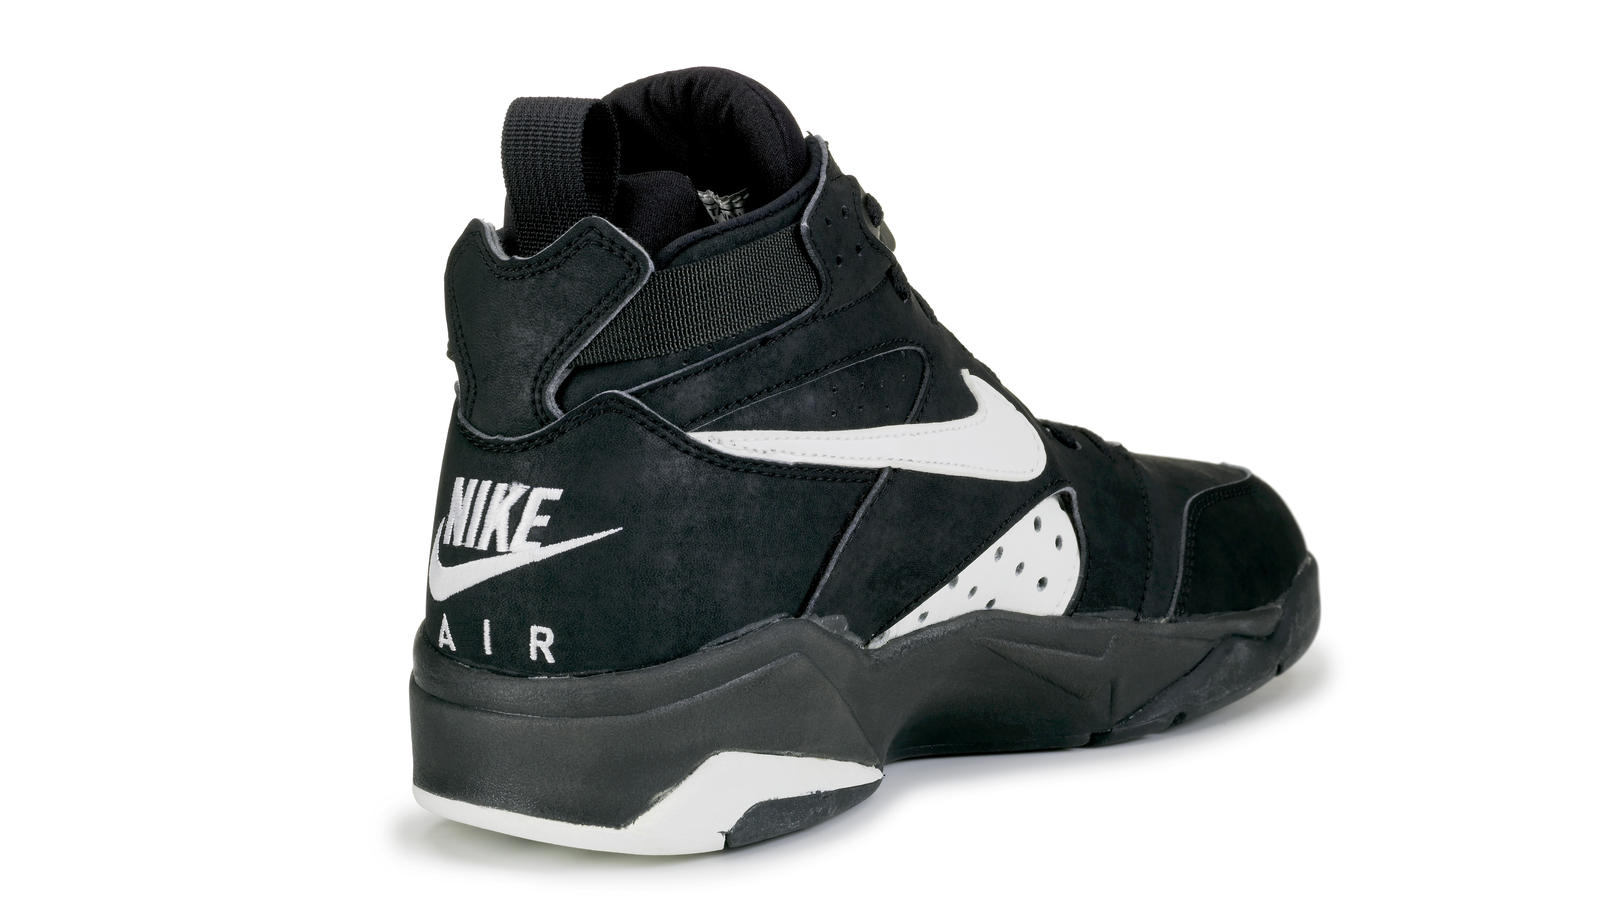 sneakers for cheap 5330d 4d9b8 Rewind back to Nike's Holiday 1992 footwear lineup and you'll come across a  hidden gem that plays an influential role in basketball shoe design to this  day.